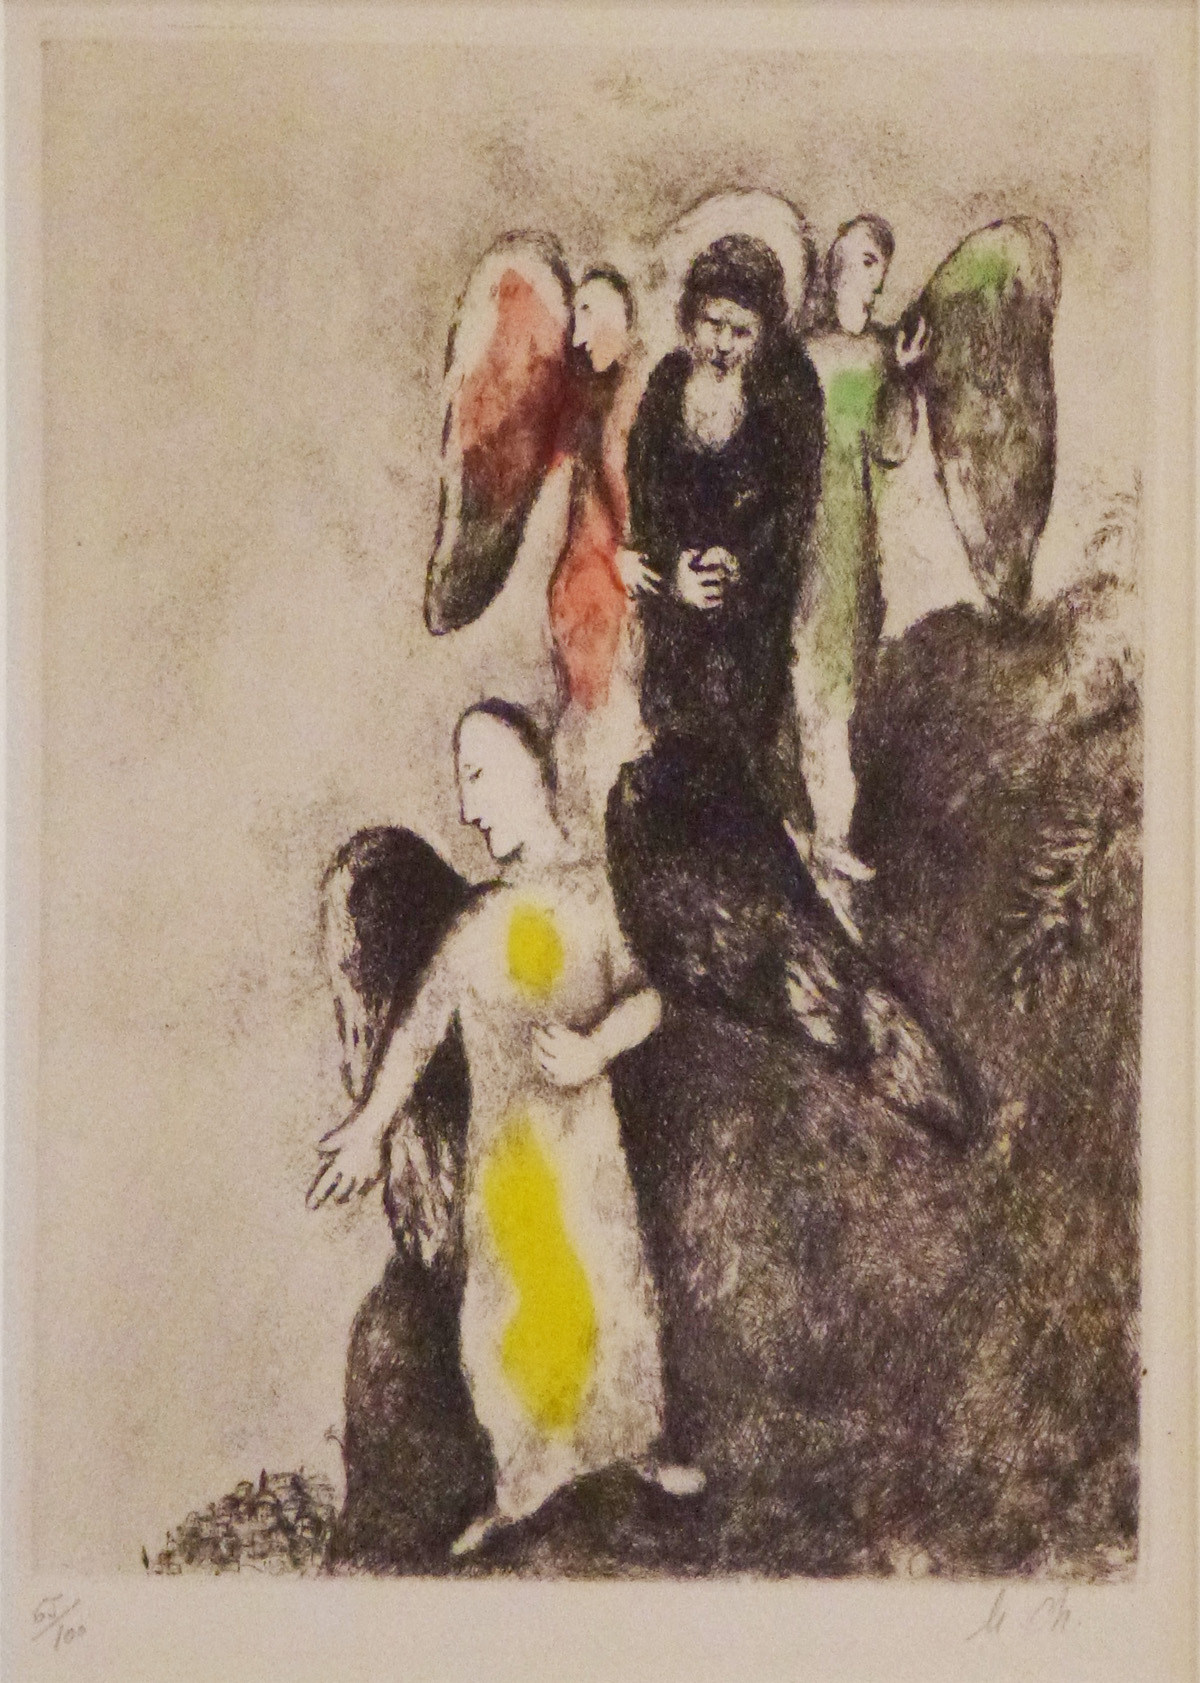 Descent Towards Sodom (1957) hand-colored etching by Marc Chagall Courtesy Haggerty Museum of Art, Gift of Patrick and Beatrice Haggerty Marc Chagall © 2012 Artists Rights Society (ARS), New York / ADAGP, Paris